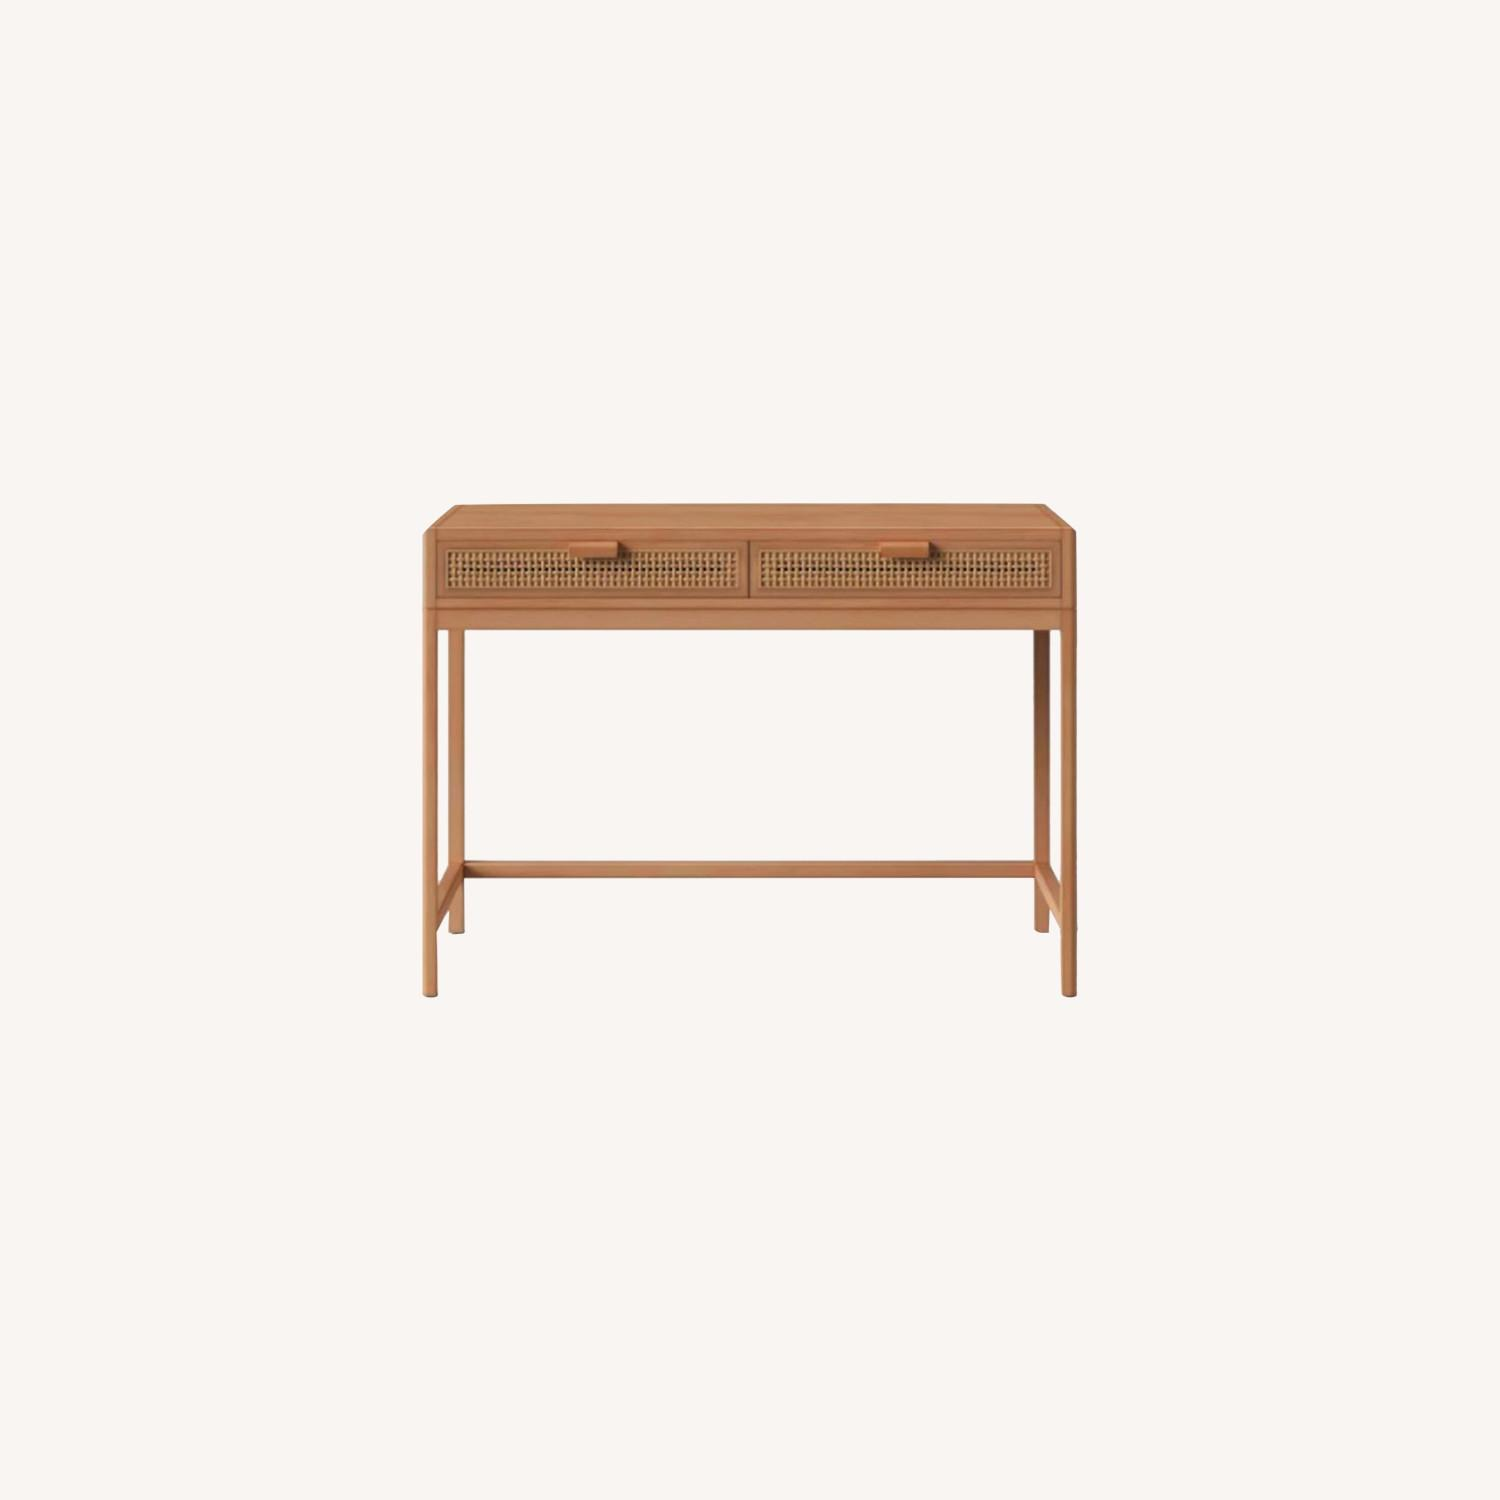 Target Opalhouse Writing Desk with Drawers Brown - image-0